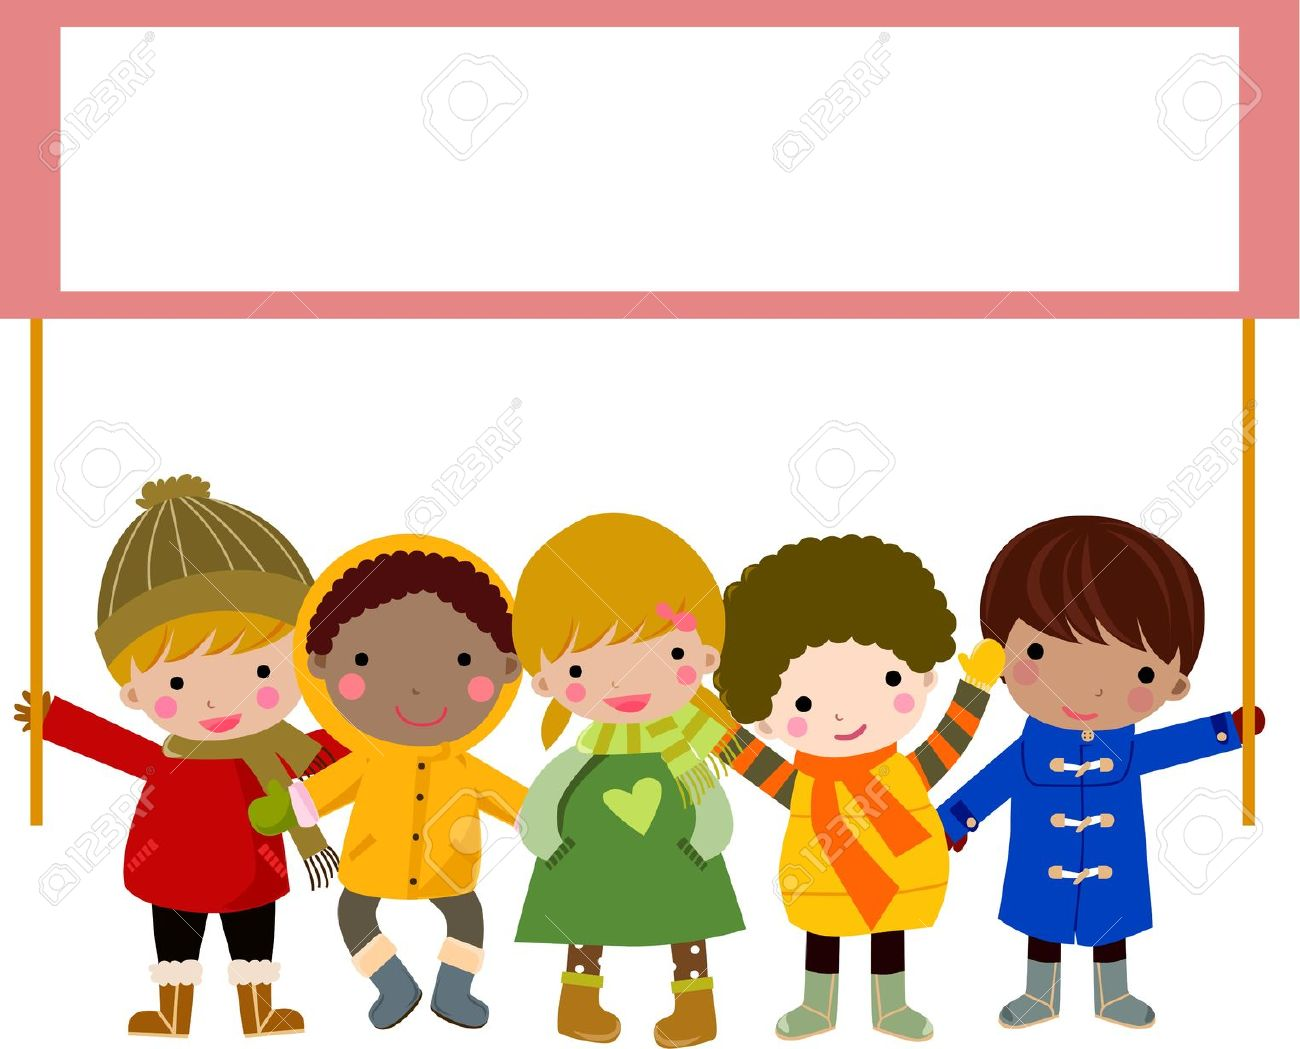 Kids cliparts image royalty free stock Kids cliparts - ClipartFest image royalty free stock